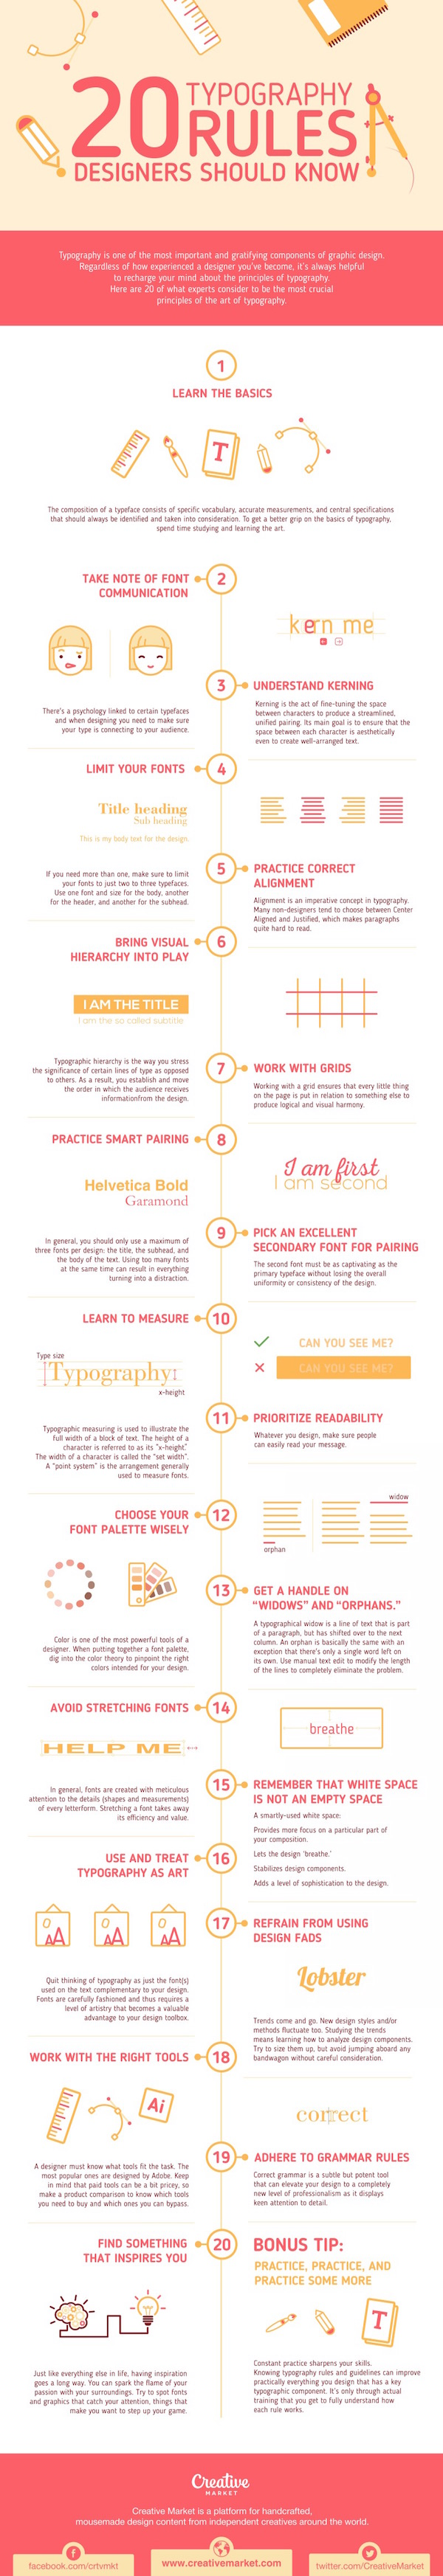 Infographic: 20 Typography Rules Every Graphic Designer Should Know